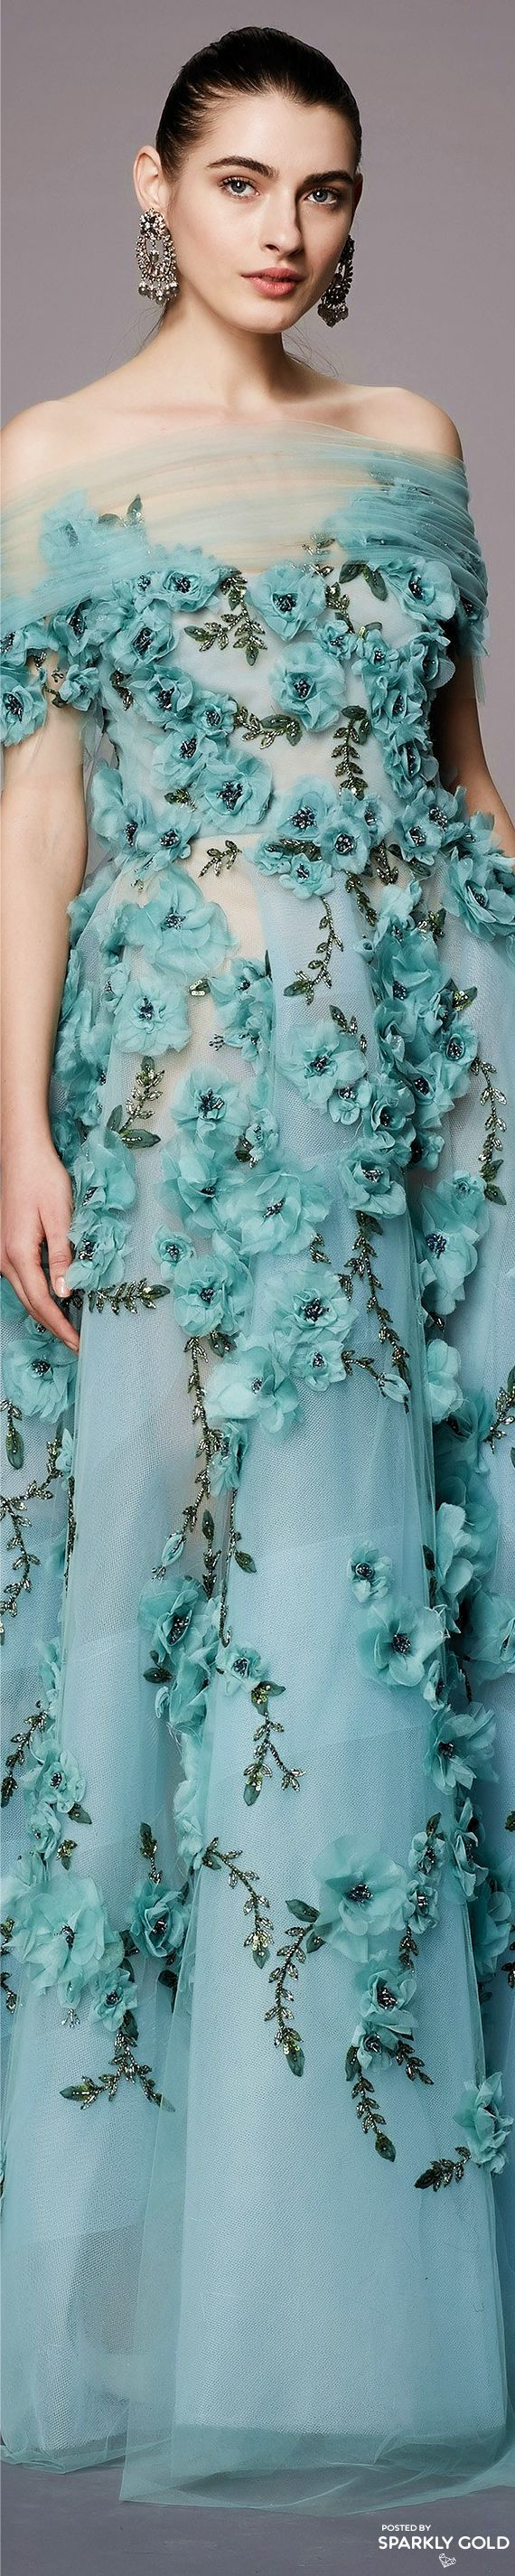 353 best Fashion: Marchesa images on Pinterest | High fashion, Cute ...